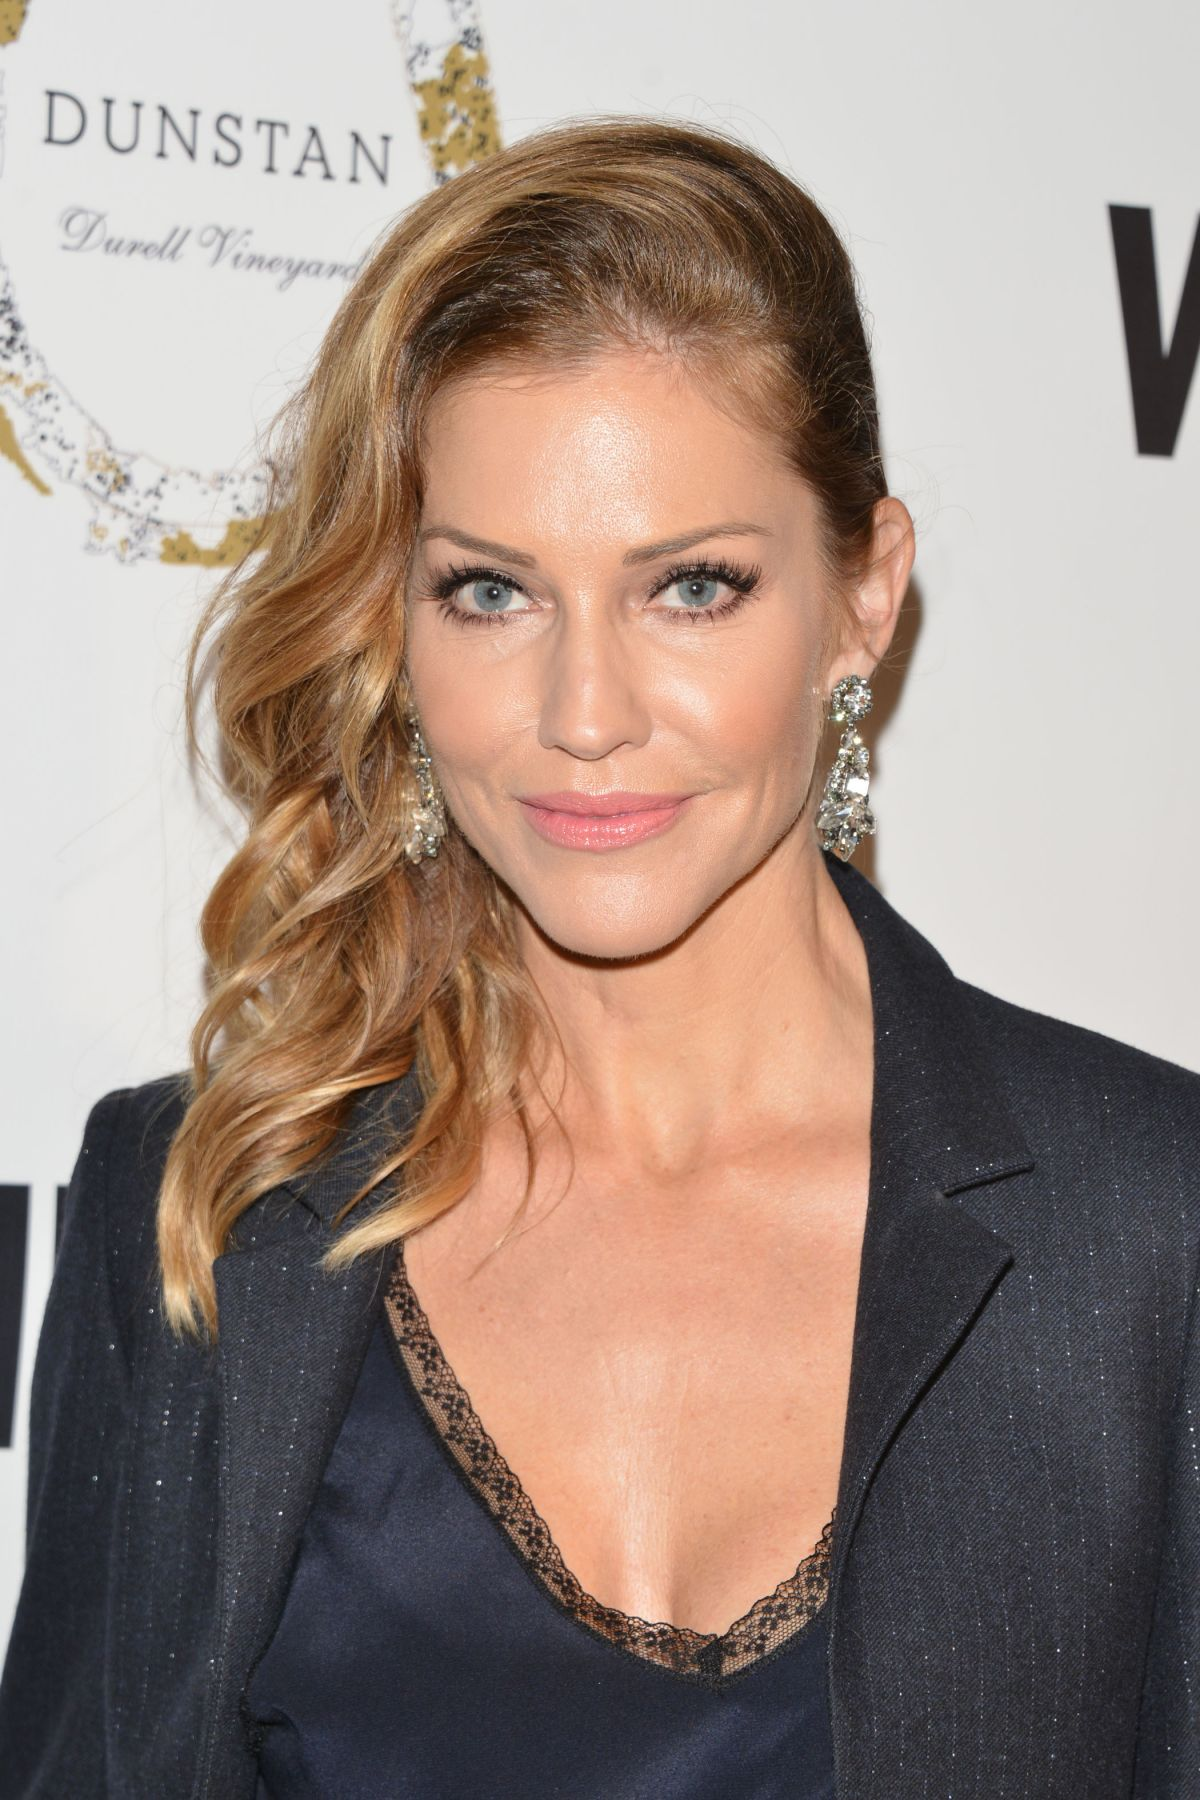 Photos Tricia Helfer nude (28 photos), Topless, Cleavage, Twitter, bra 2017